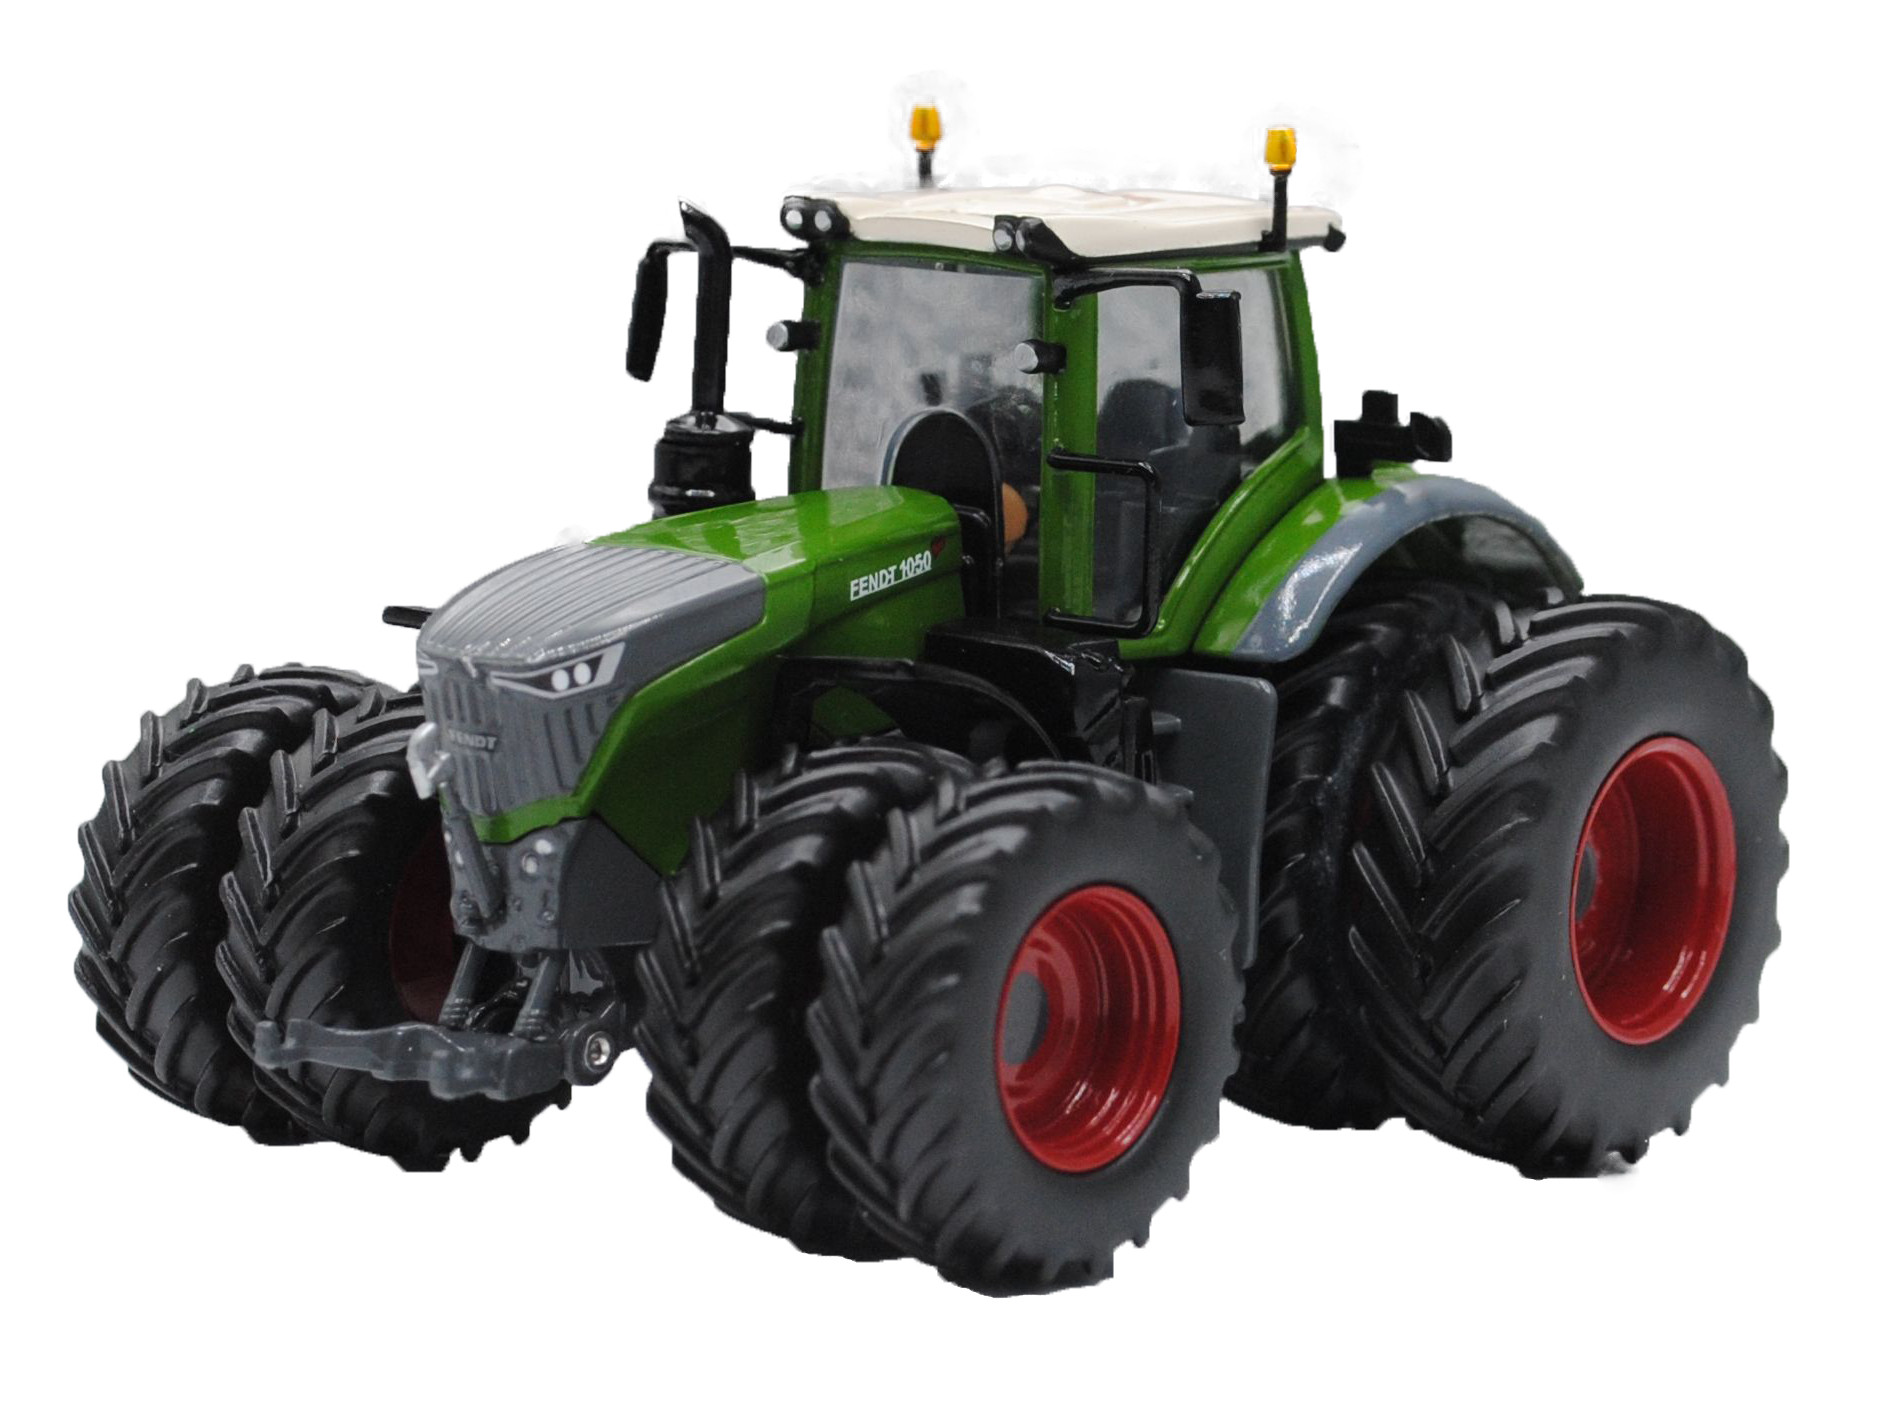 Fendt 1050 Farm Show Edition